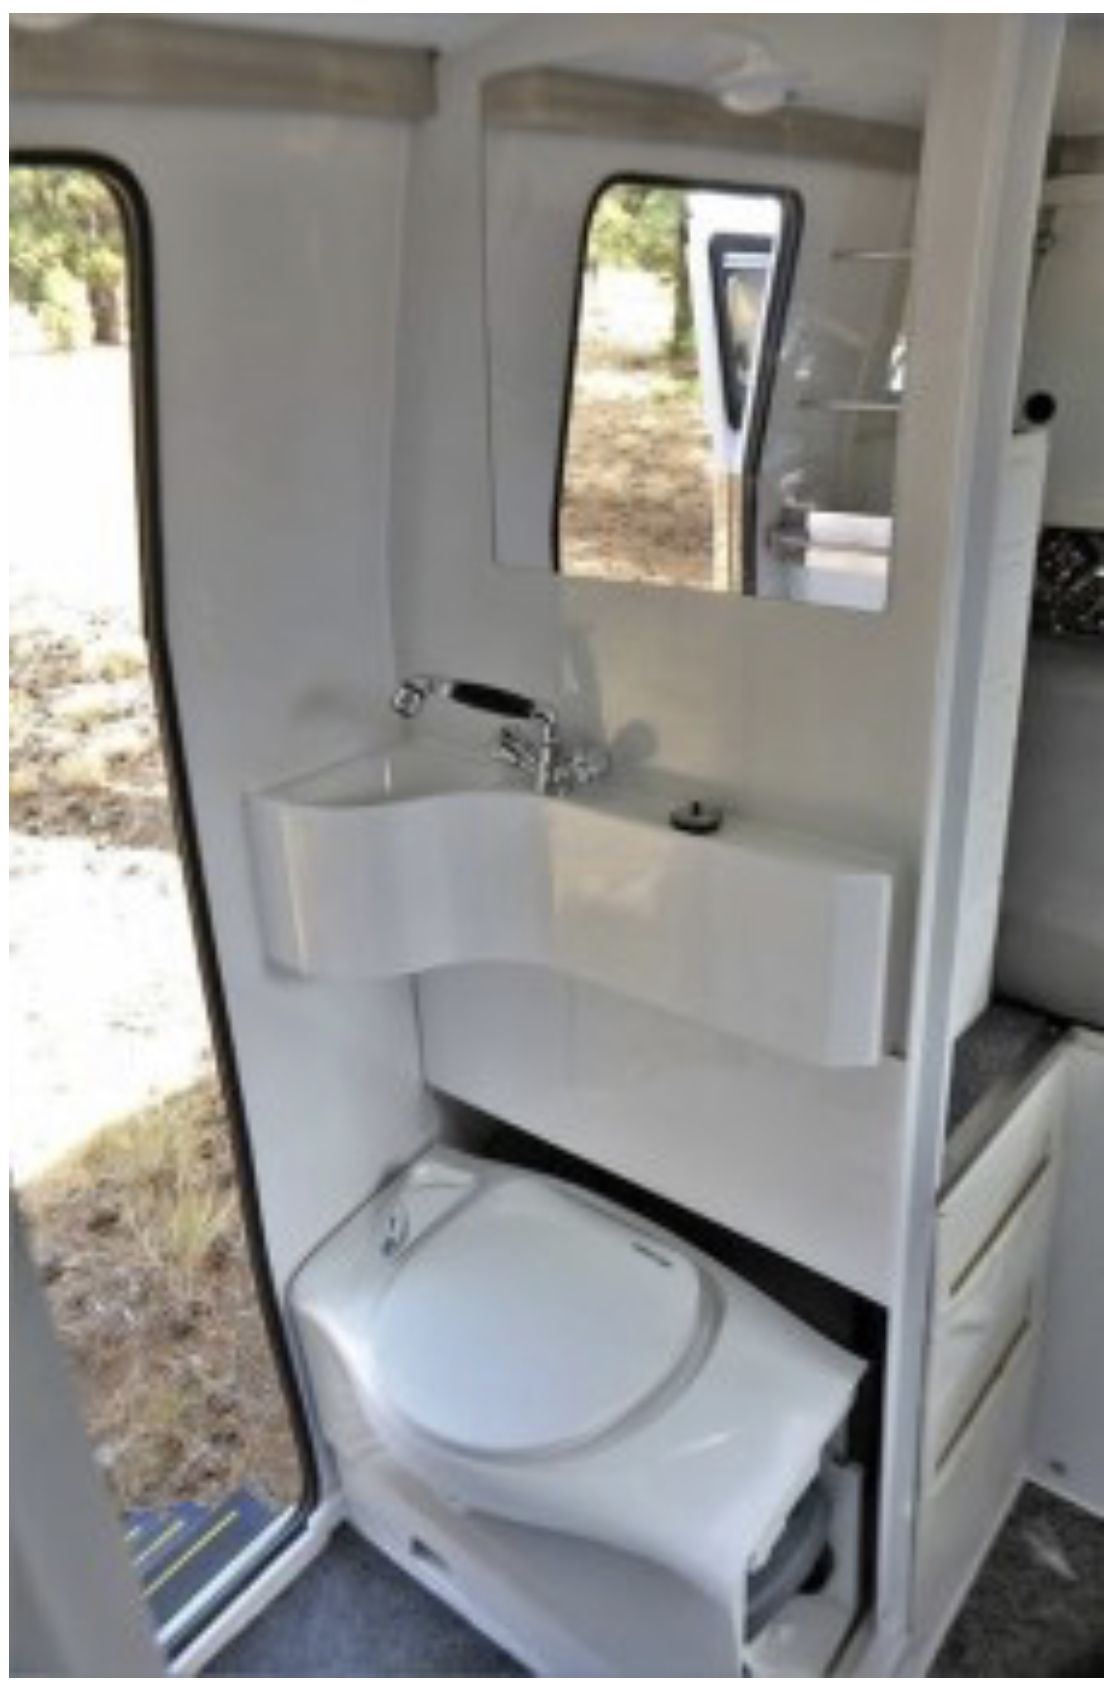 Toilet design Camper bathroom, Camper, Small rv